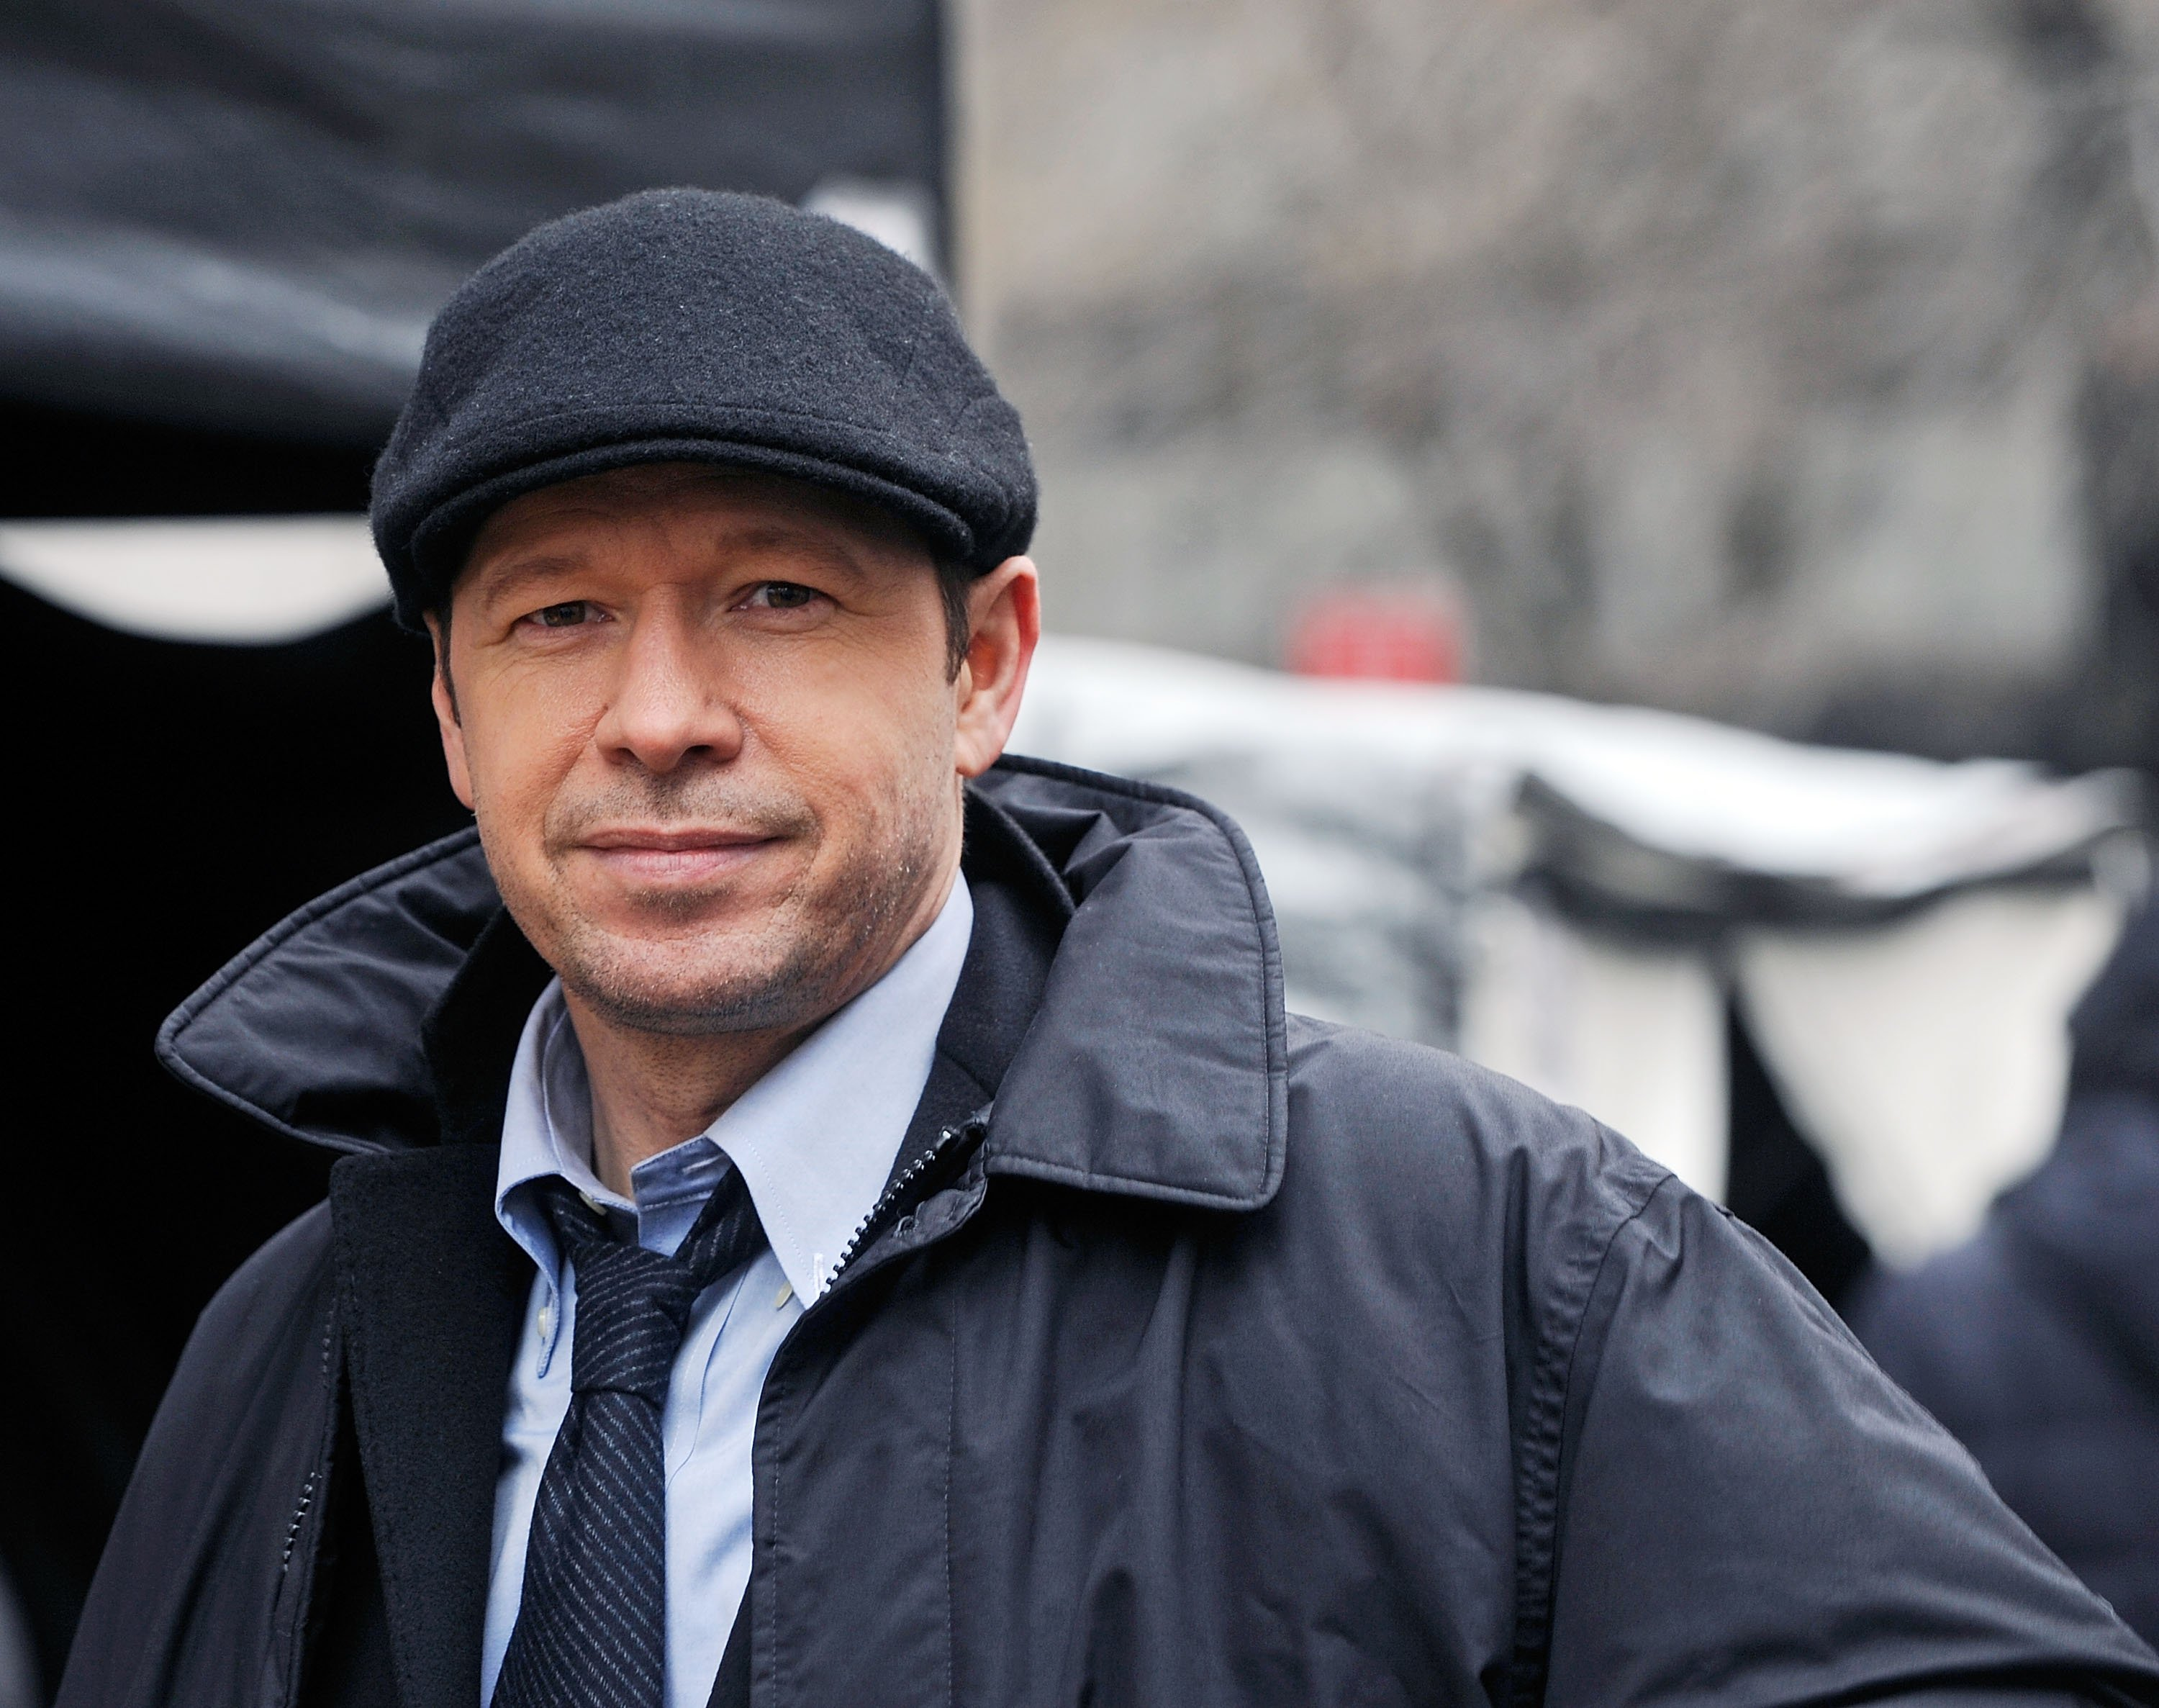 """Donnie Wahlberg filming on location for """"Blue Bloods""""on March 1, 2012 in New York 